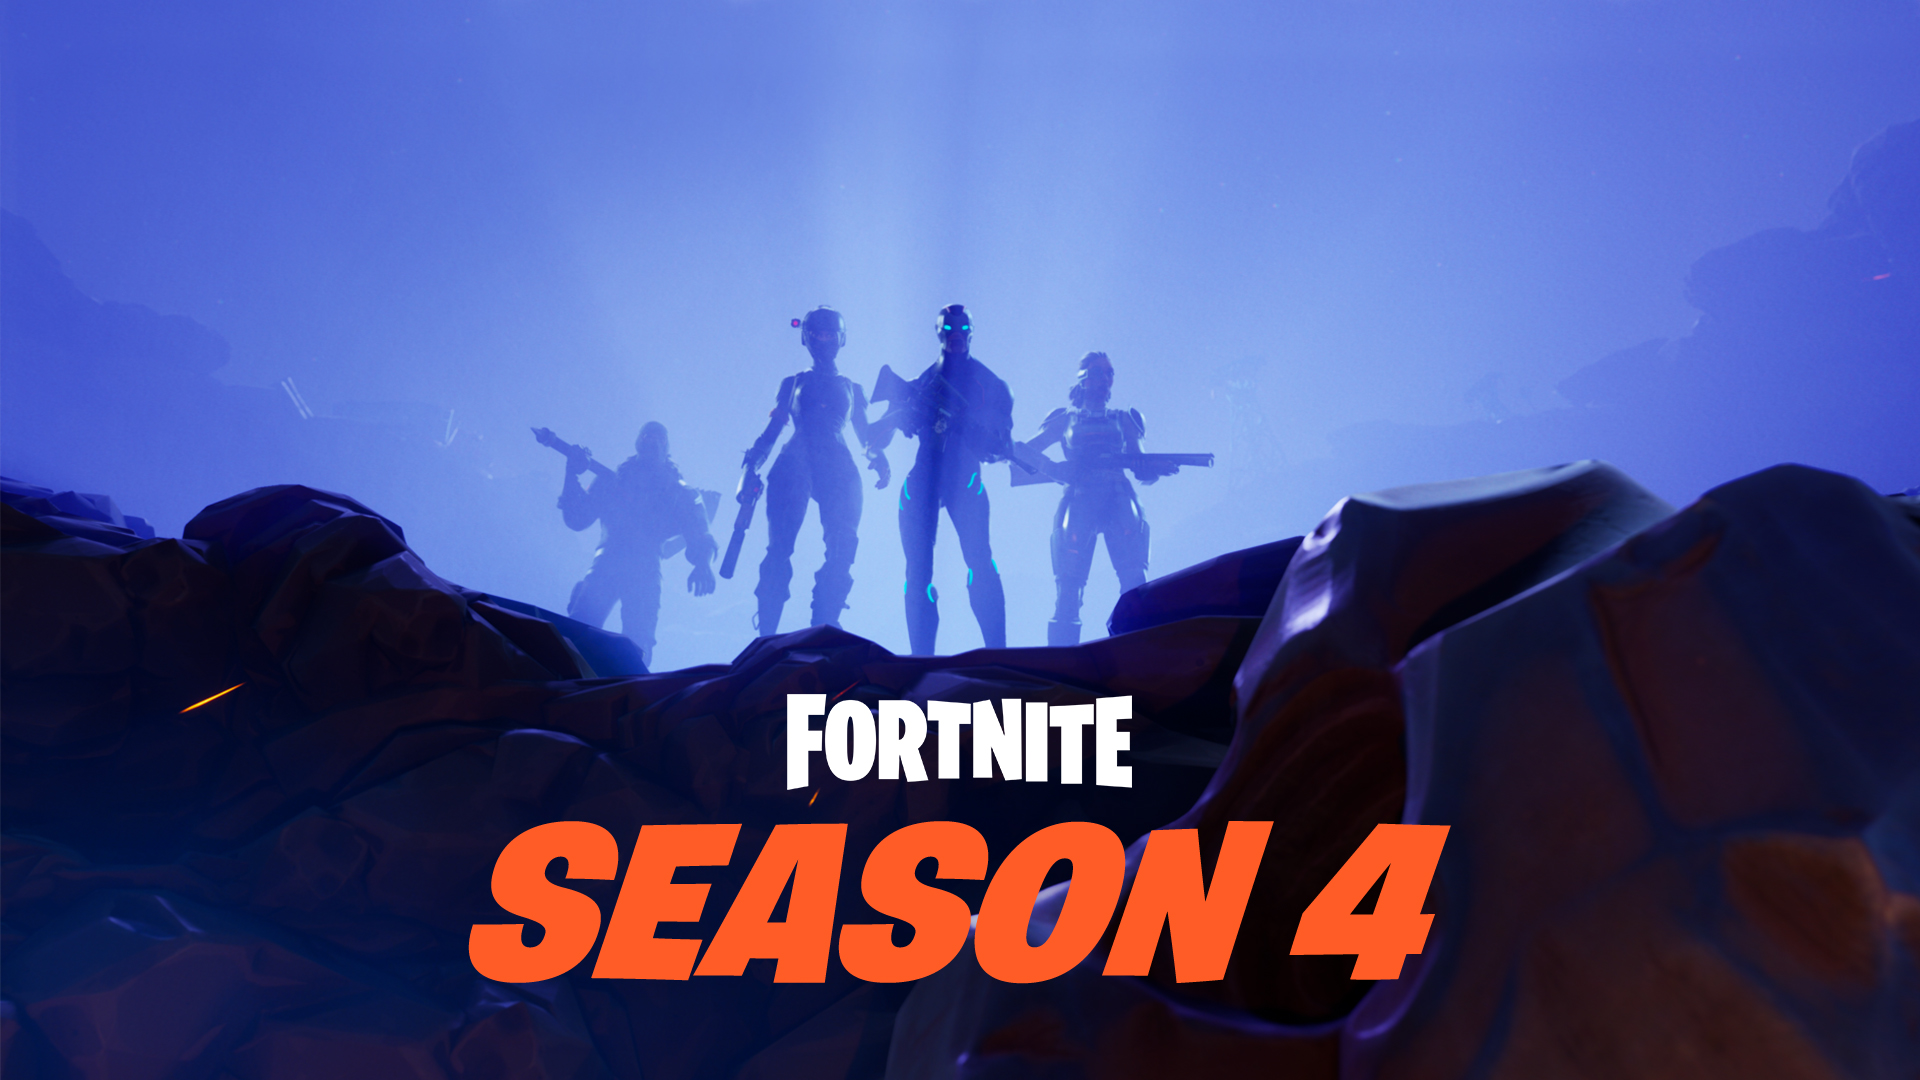 Fortnite season 4 hd games 4k wallpapers images backgrounds fortnite season 4 voltagebd Choice Image